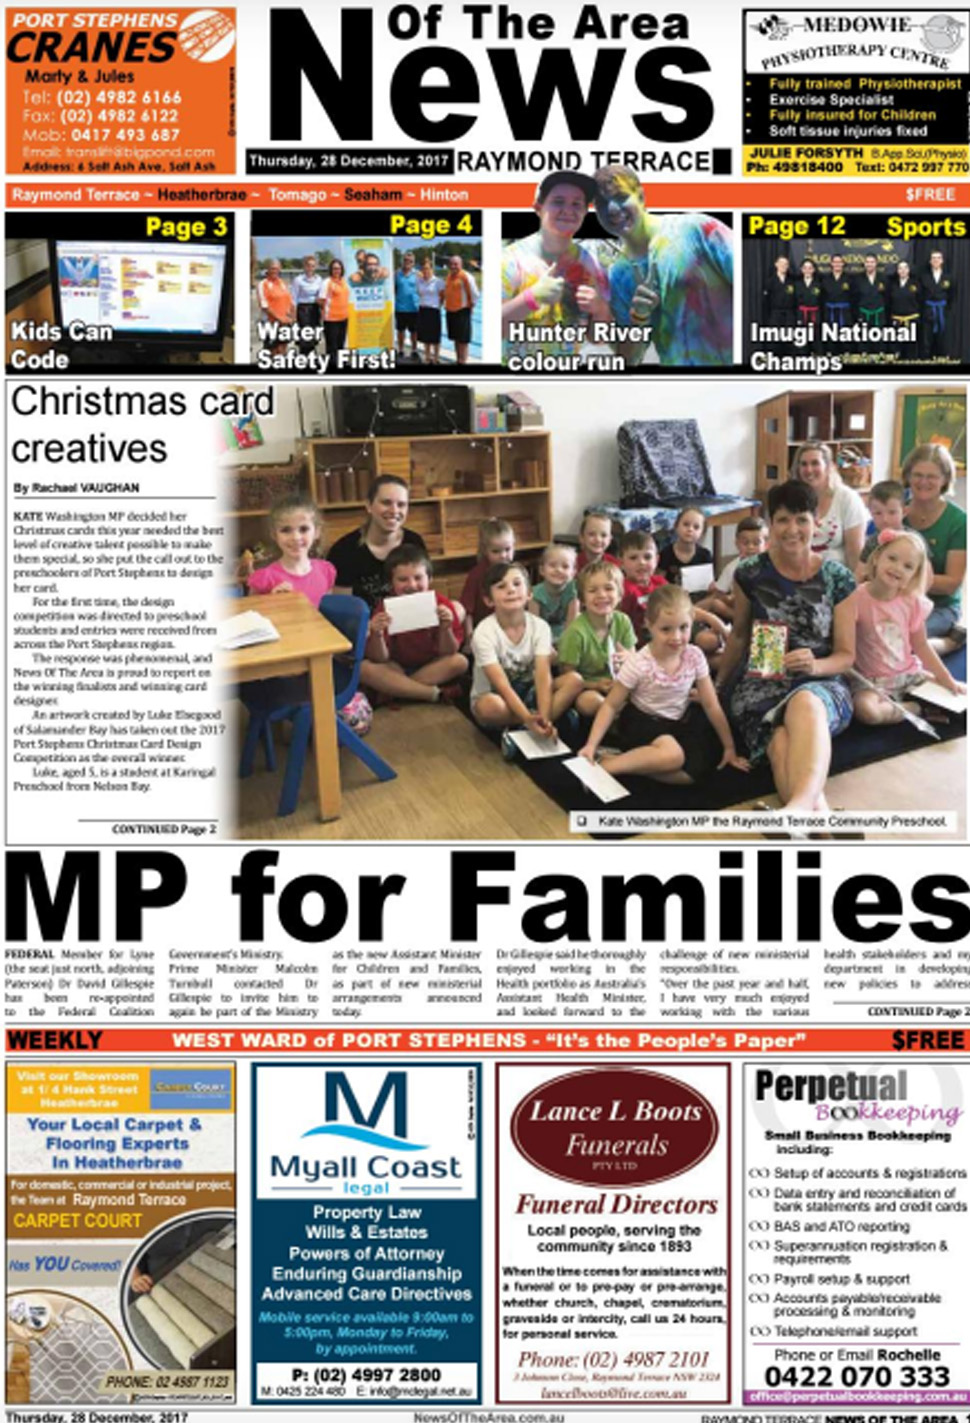 raymond terrace news of the area 28 december 2017 news